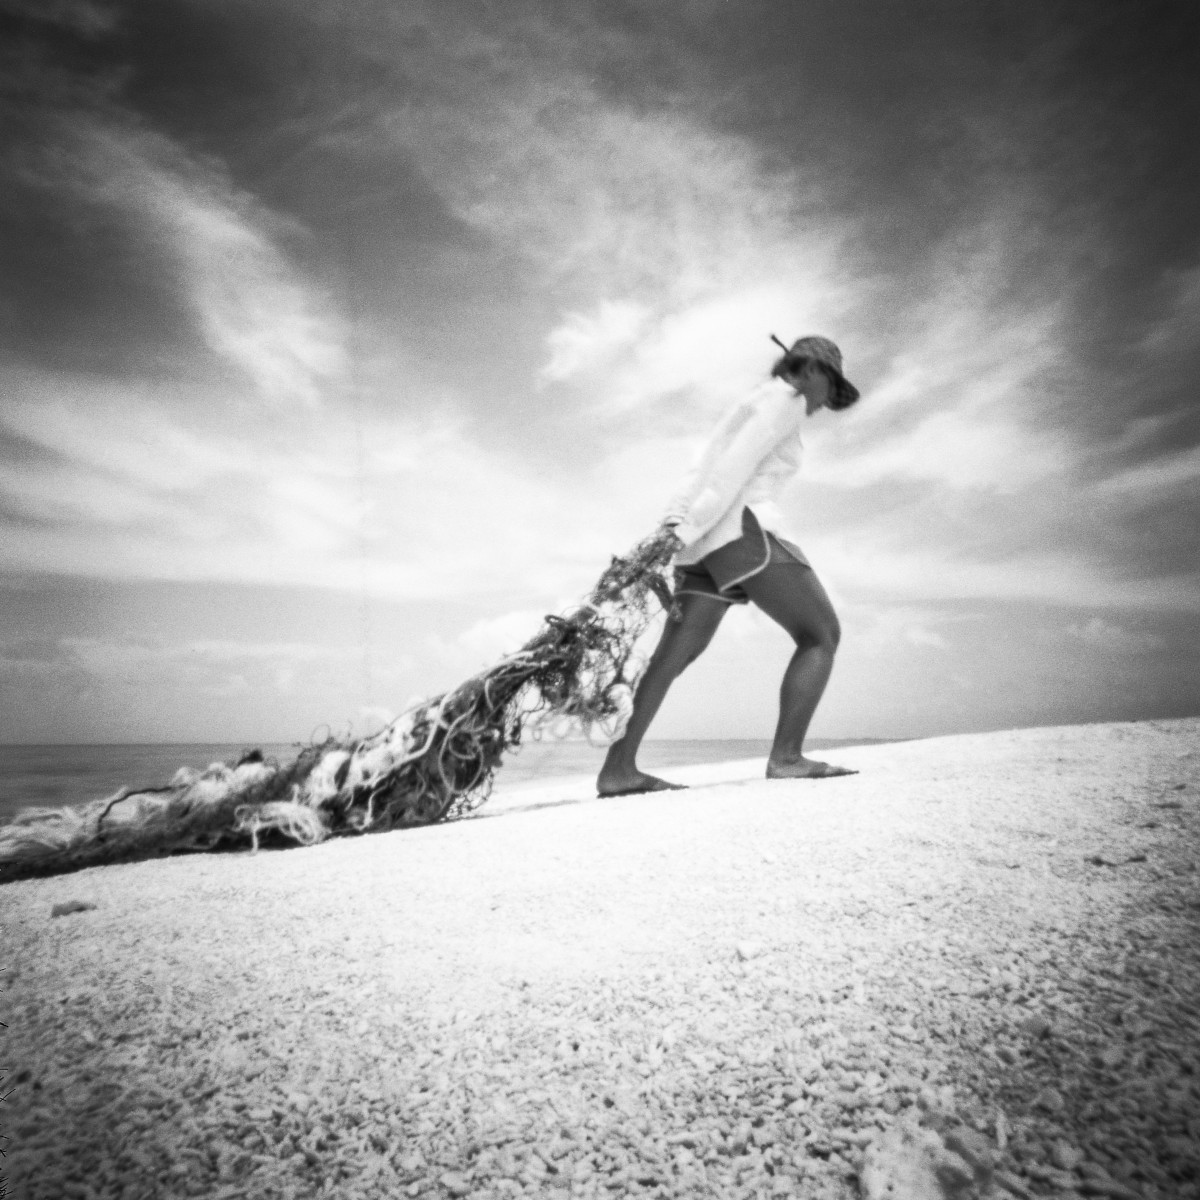 A black and white photo of a woman dragging behind her a large amount of marine debris.